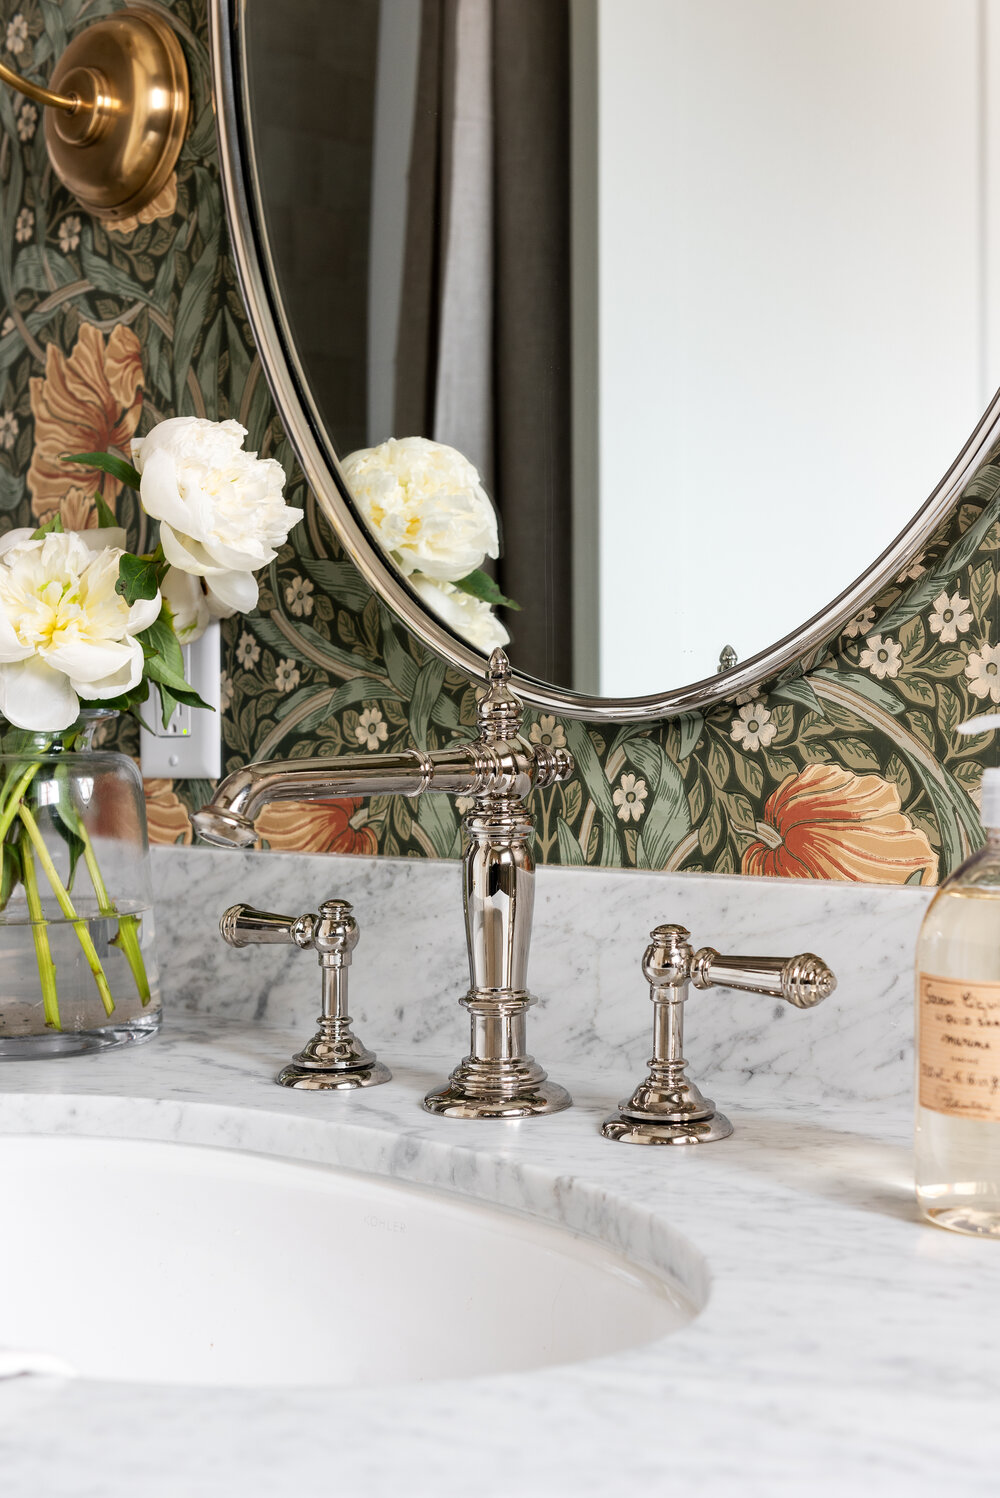 Ivy's Bathroom (full photo tour coming soon!)